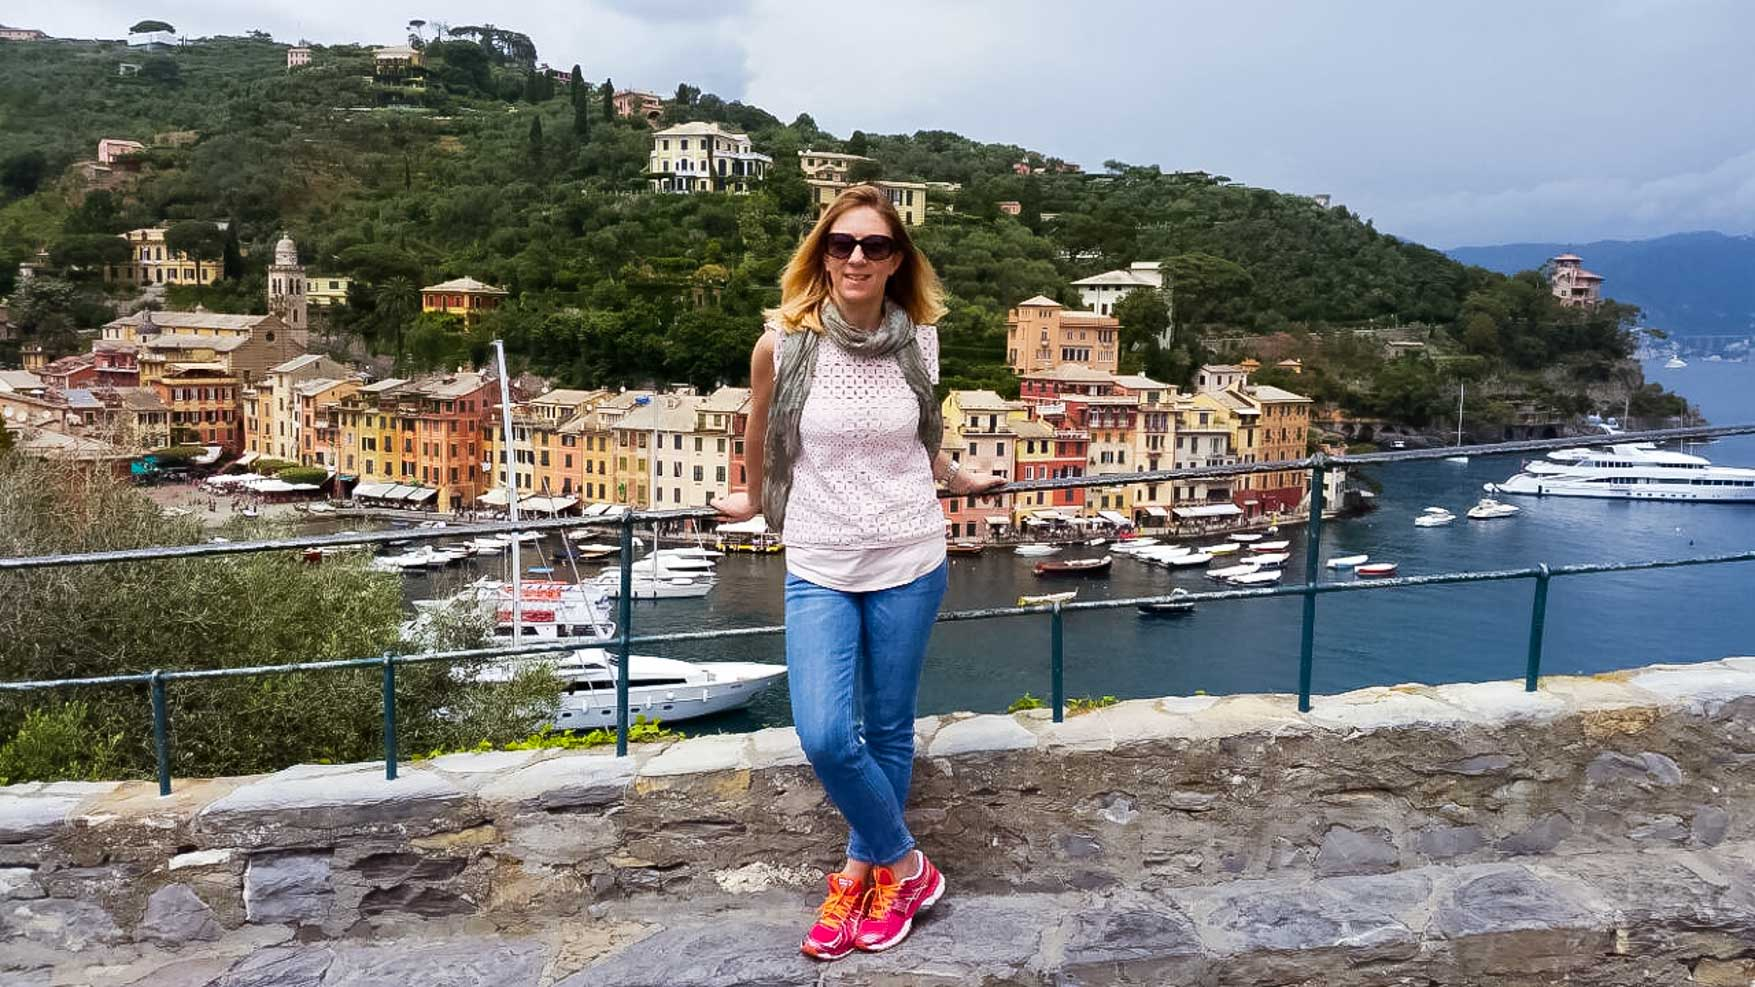 Portofino - Monica Bruni - In viaggio con Monica